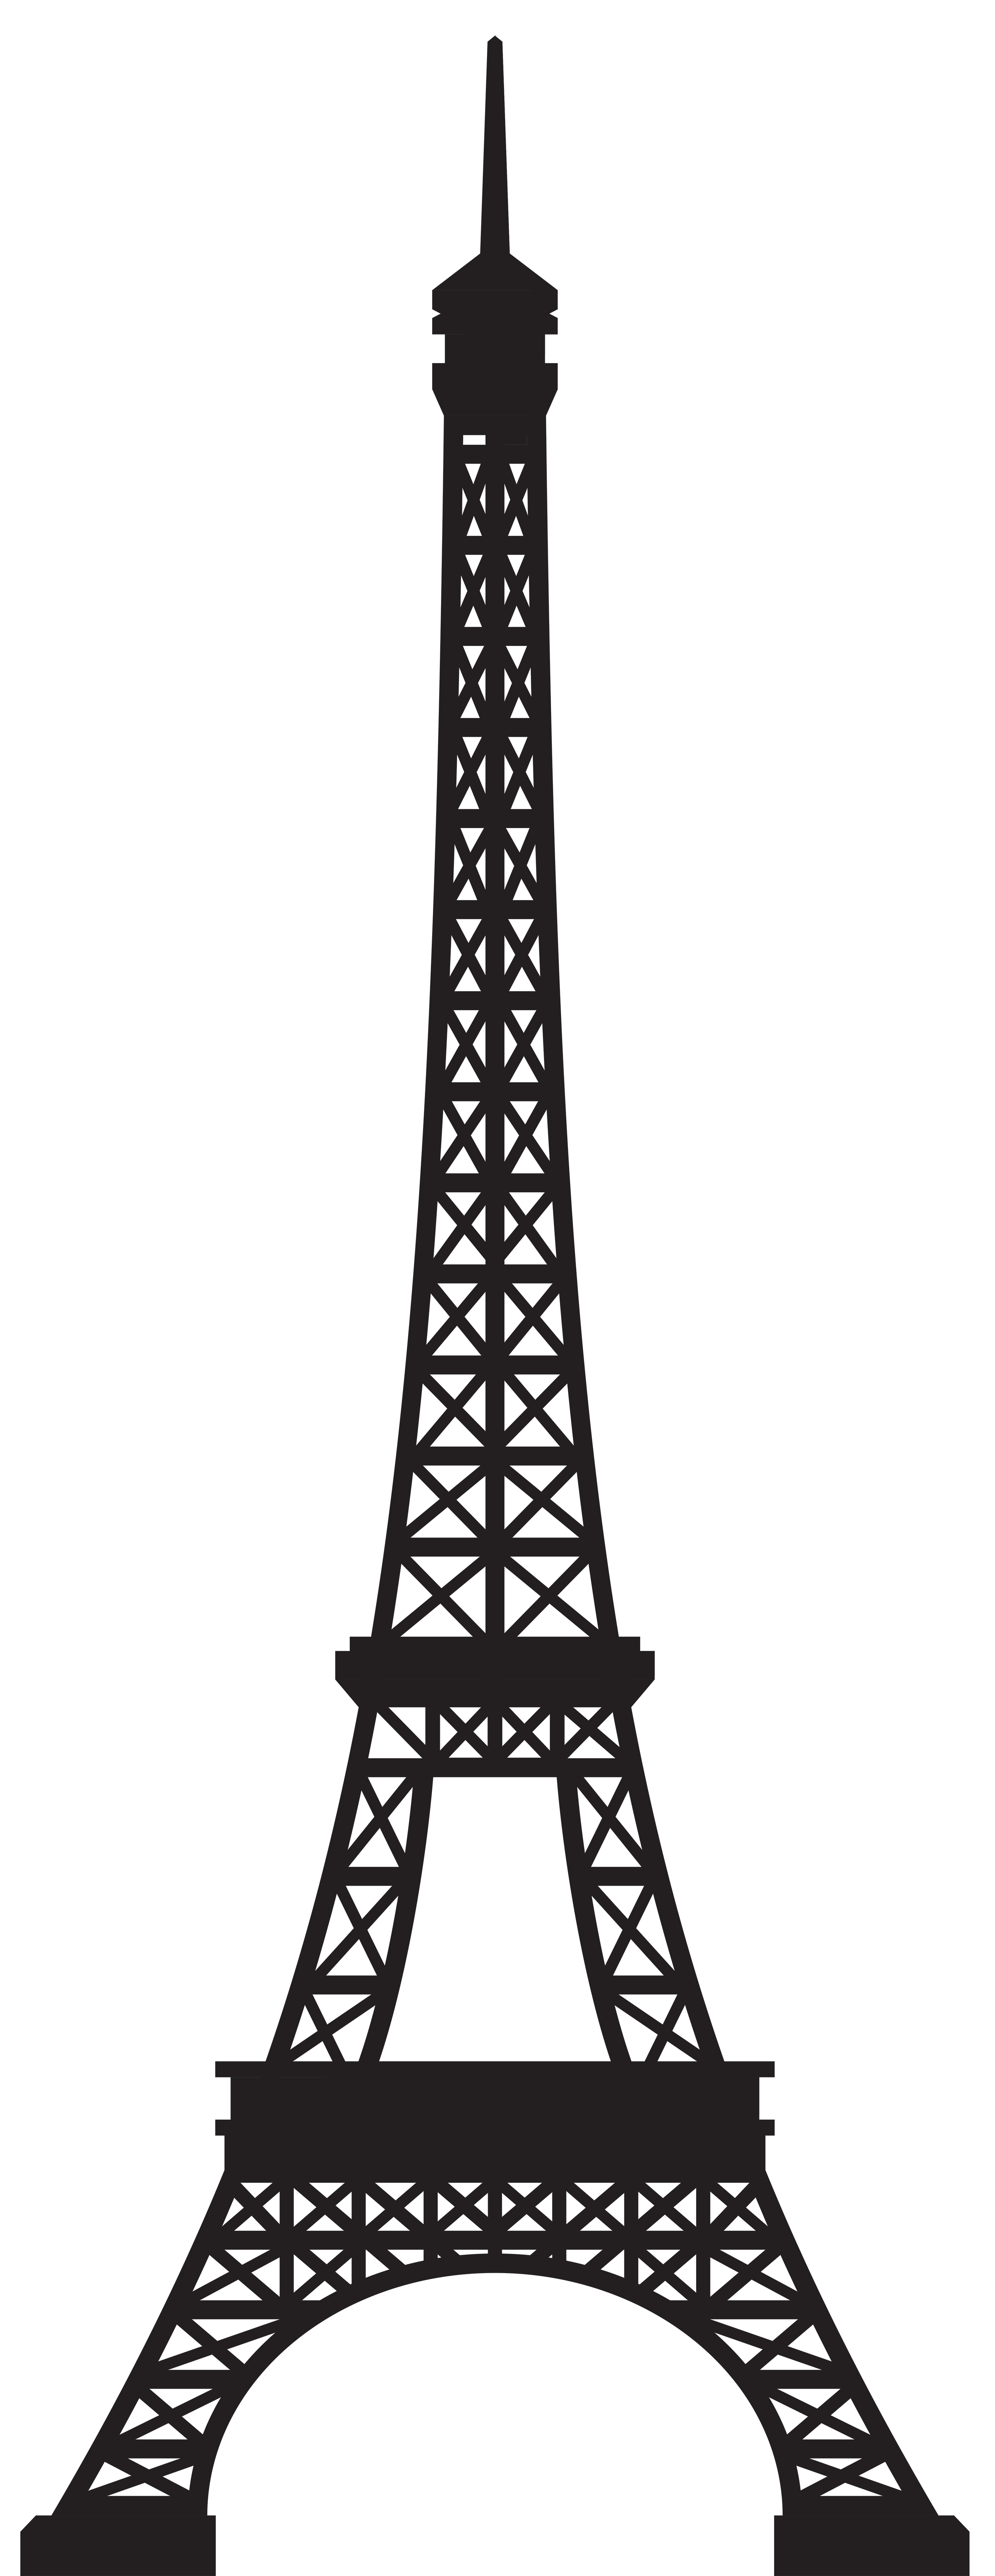 Pin by Linda Laux on Crafts | Eiffel tower silhouette ...